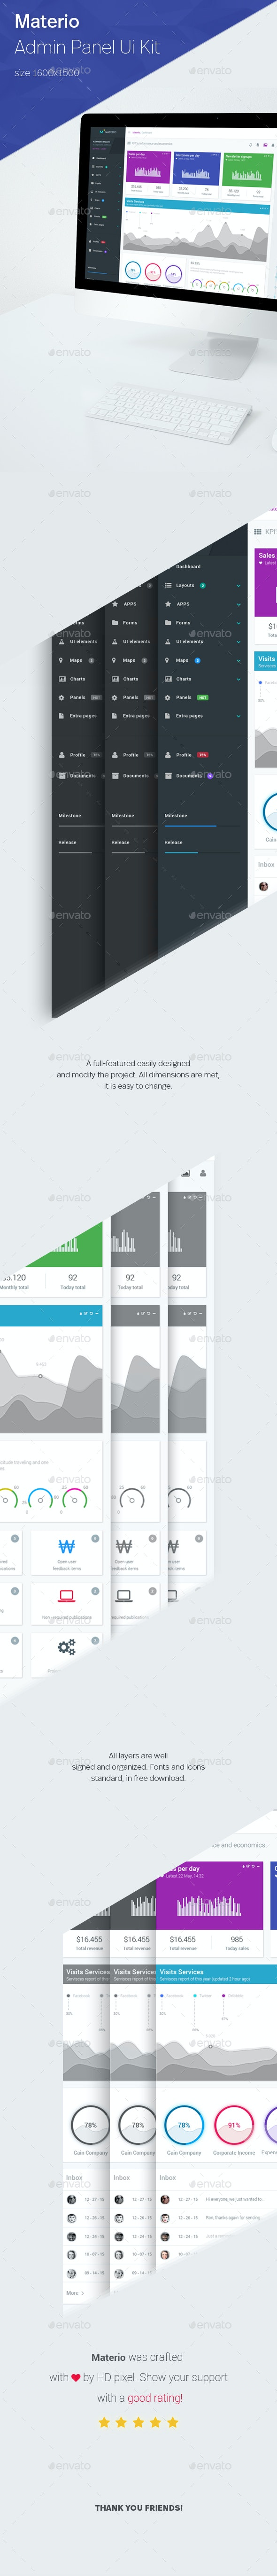 Materio - Responsive Admin Template  - User Interfaces Web Elements